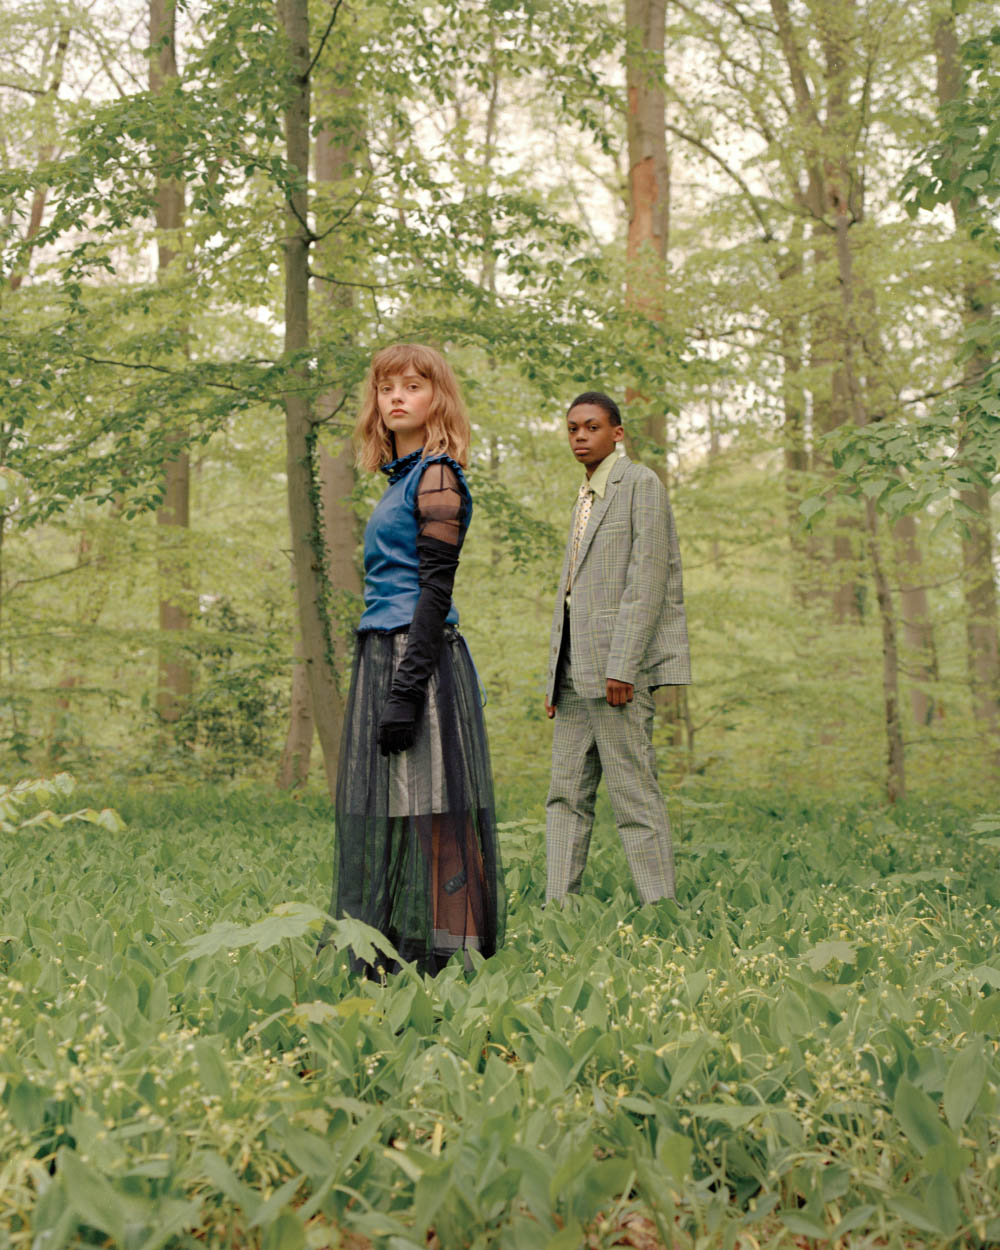 Maja wears top PREEN dress MONKI gloves TOGA PULLA skirt PREEN shoes TOGA PULLA. Jamil wears suit JULIAN ZIGERLI shirt FRECKLE SEOUL scarf MINT VINTAGE